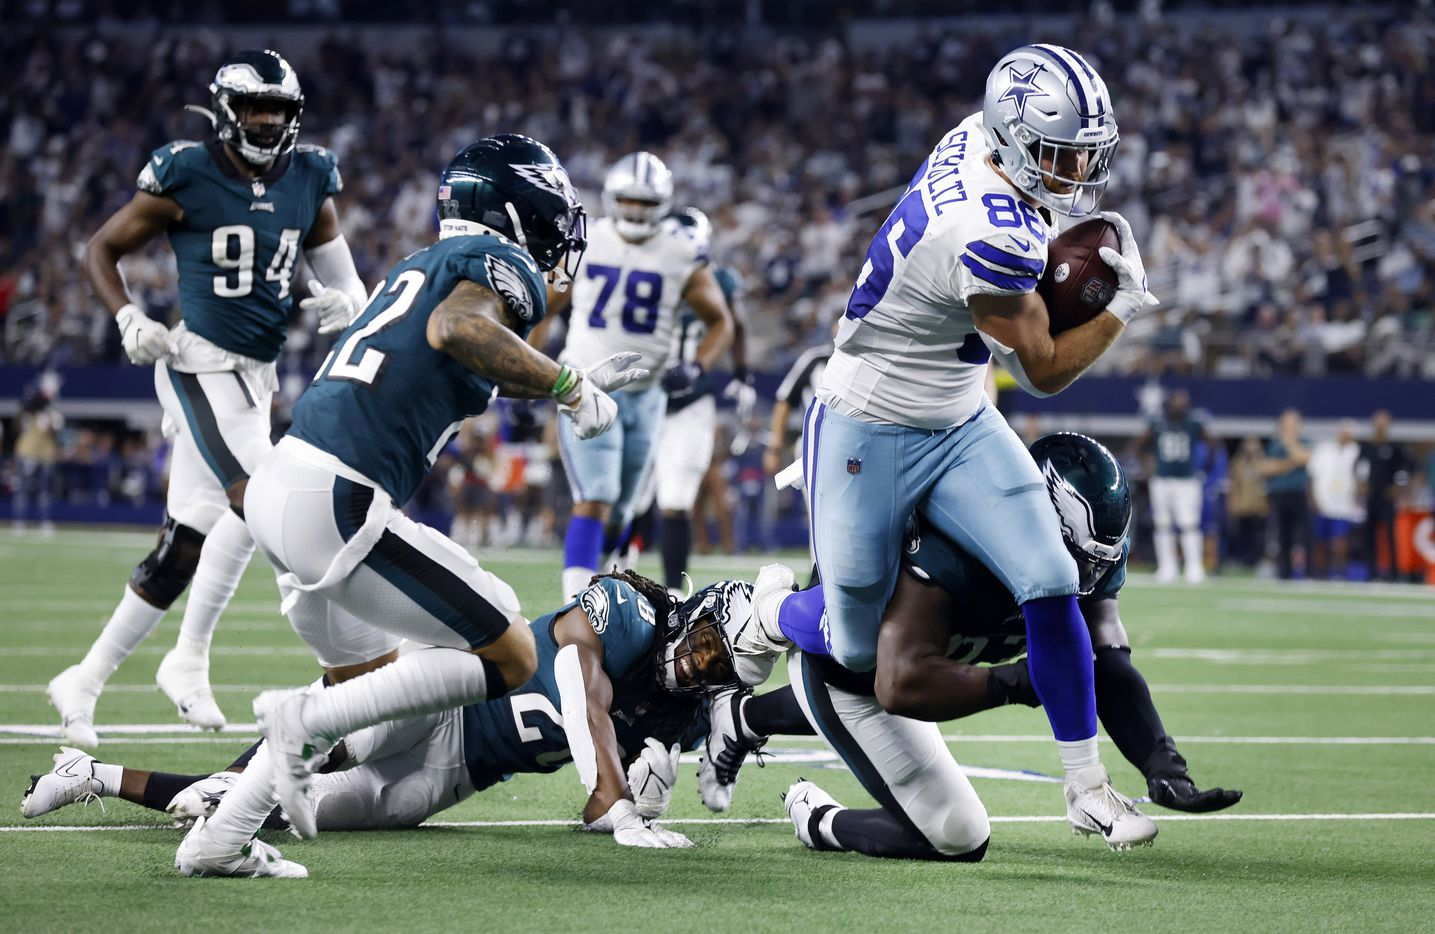 Dallas Cowboys tight end Dalton Schultz (86) breaks tackles as he scores following a fourth quarter completion against the Philadelphia Eagles defense at AT&T Stadium in Arlington, Monday, September 27, 2021. (Tom Fox/The Dallas Morning News)